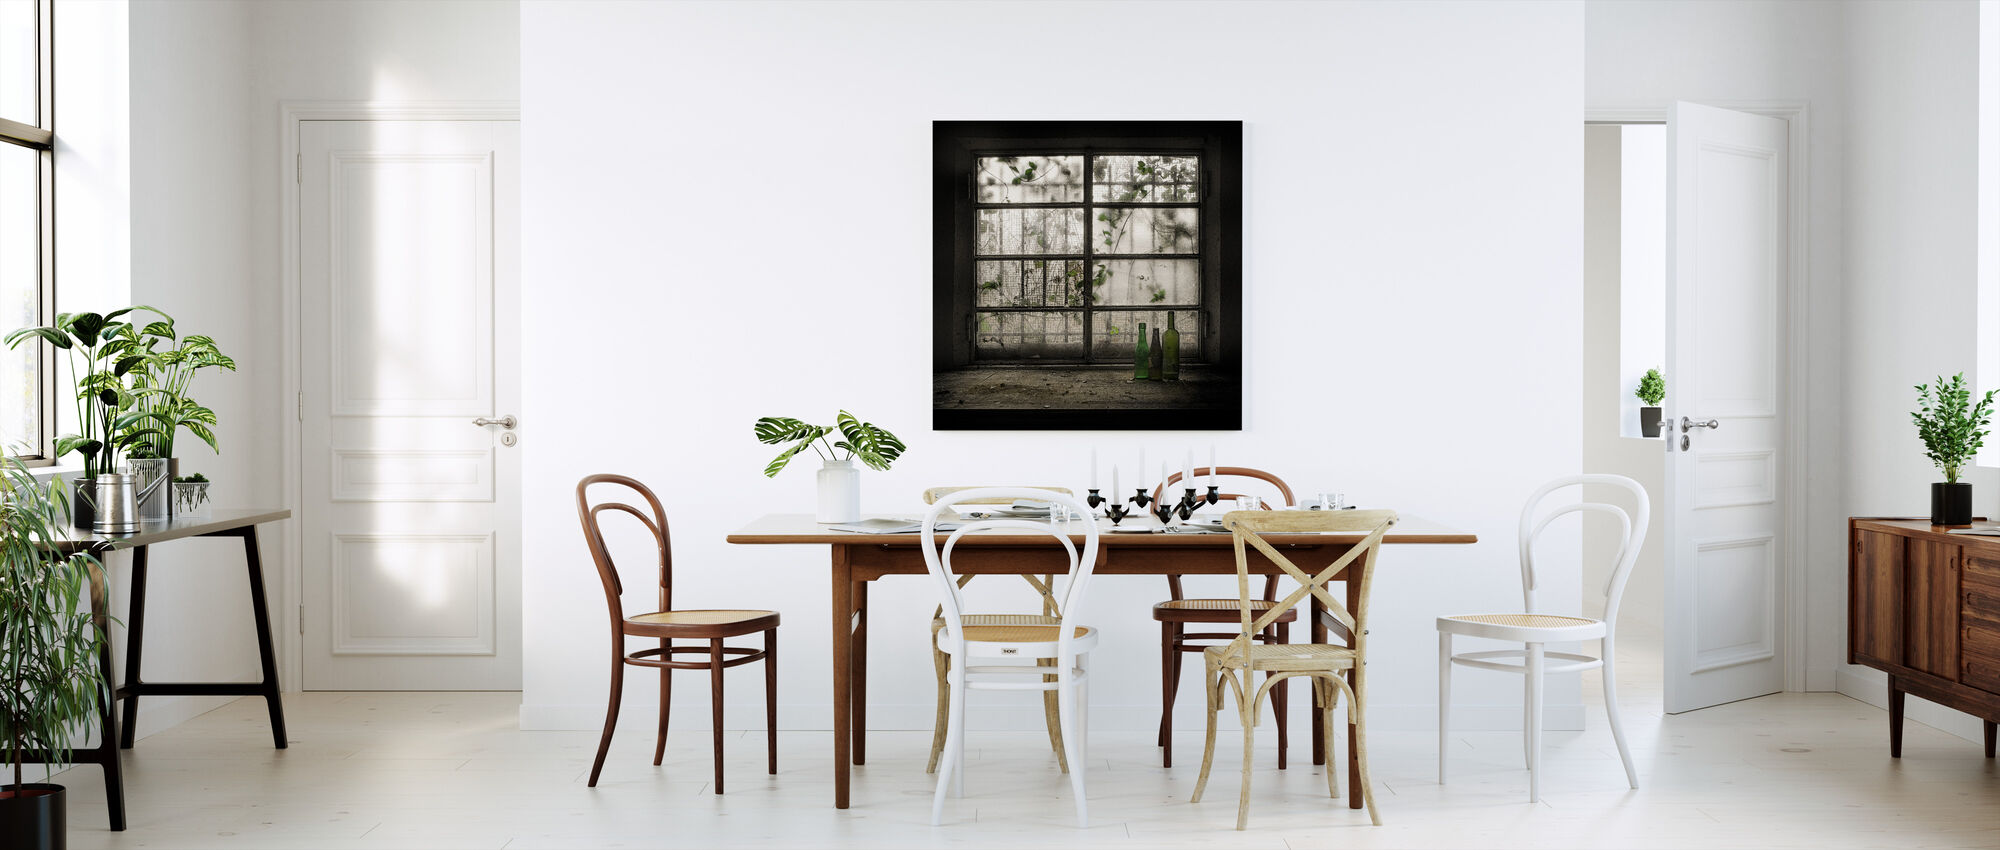 Looking Outside Old Window - Canvas print - Kitchen